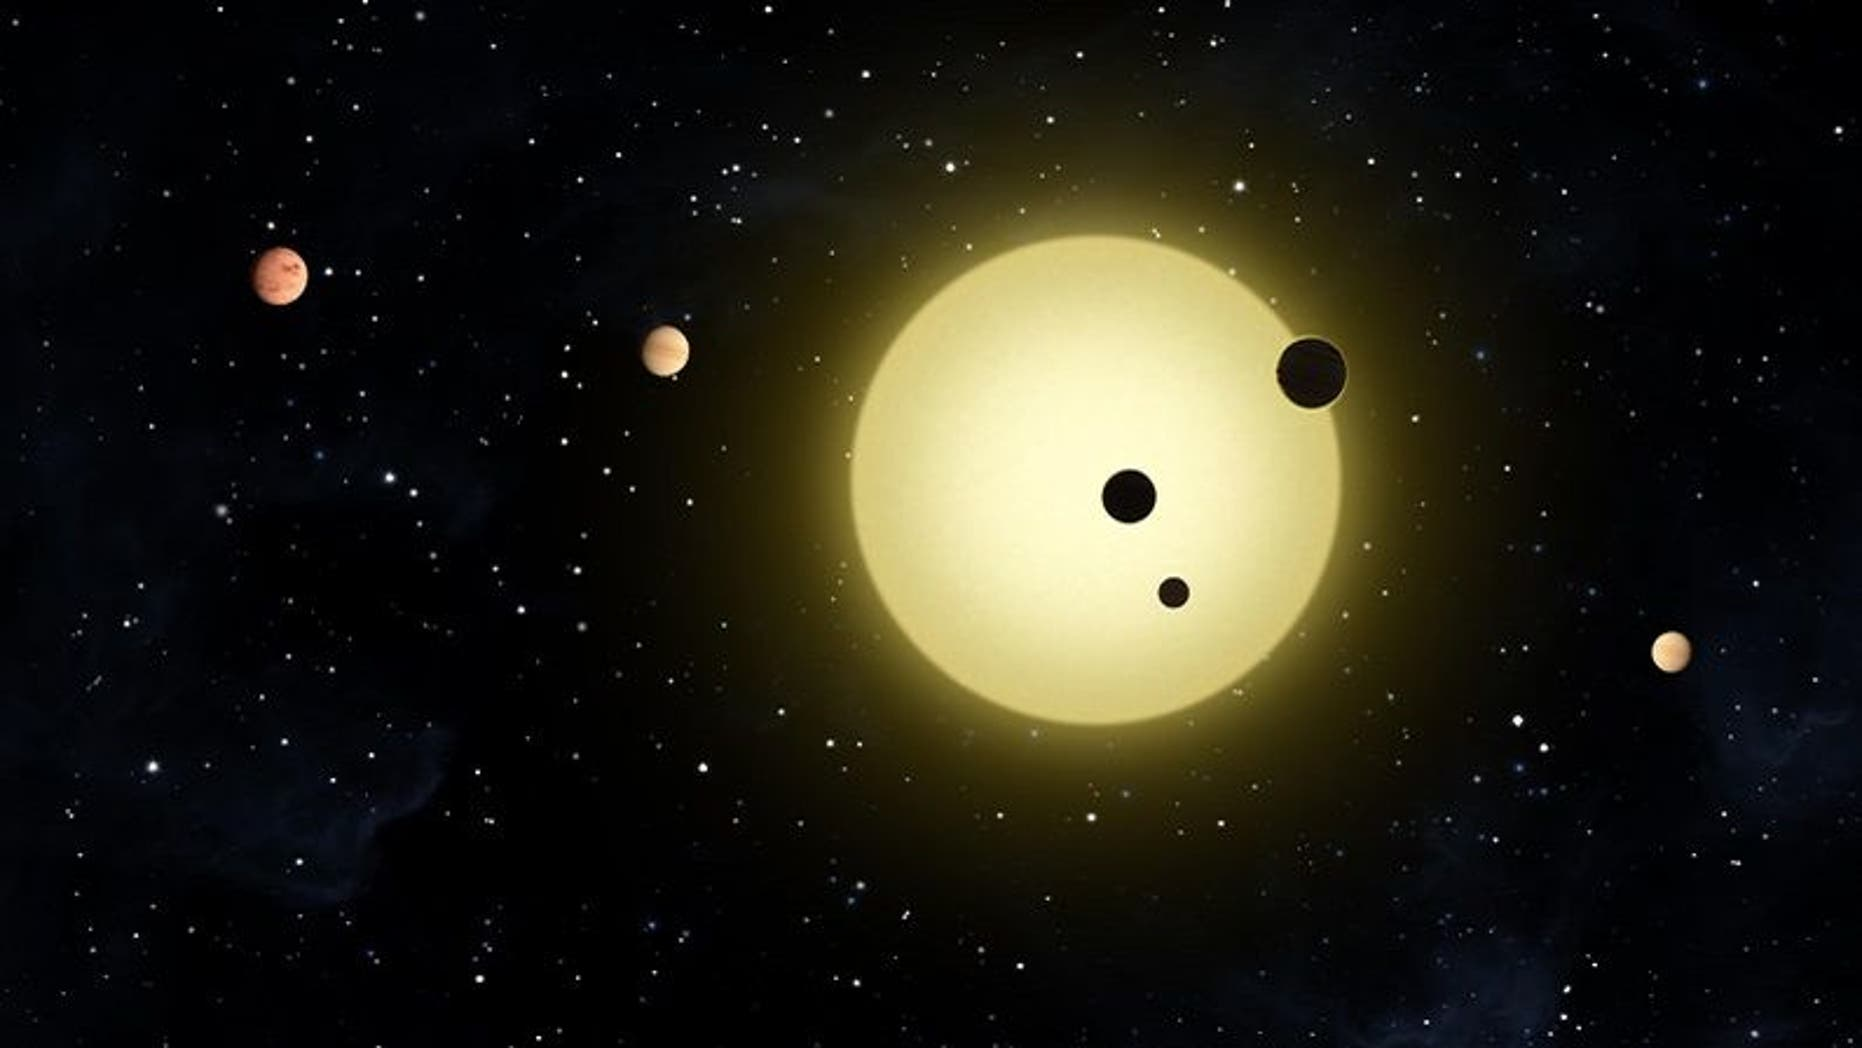 The Kepler-11 system has a sun-like star with six orbiting planets.